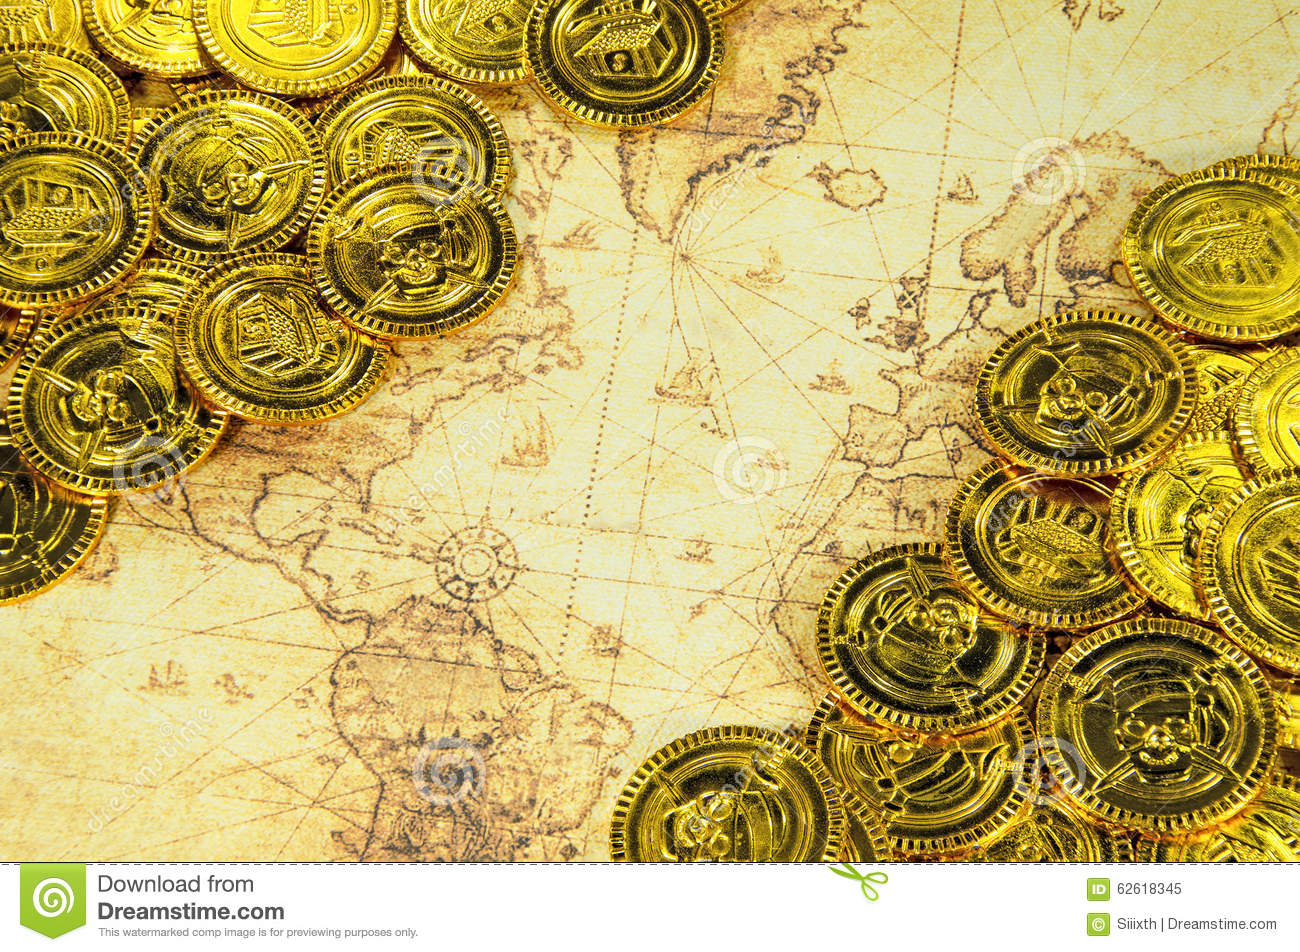 Pirate World Map.Pirate Golden Coin On A Old World Map Stock Image Image Of Brass